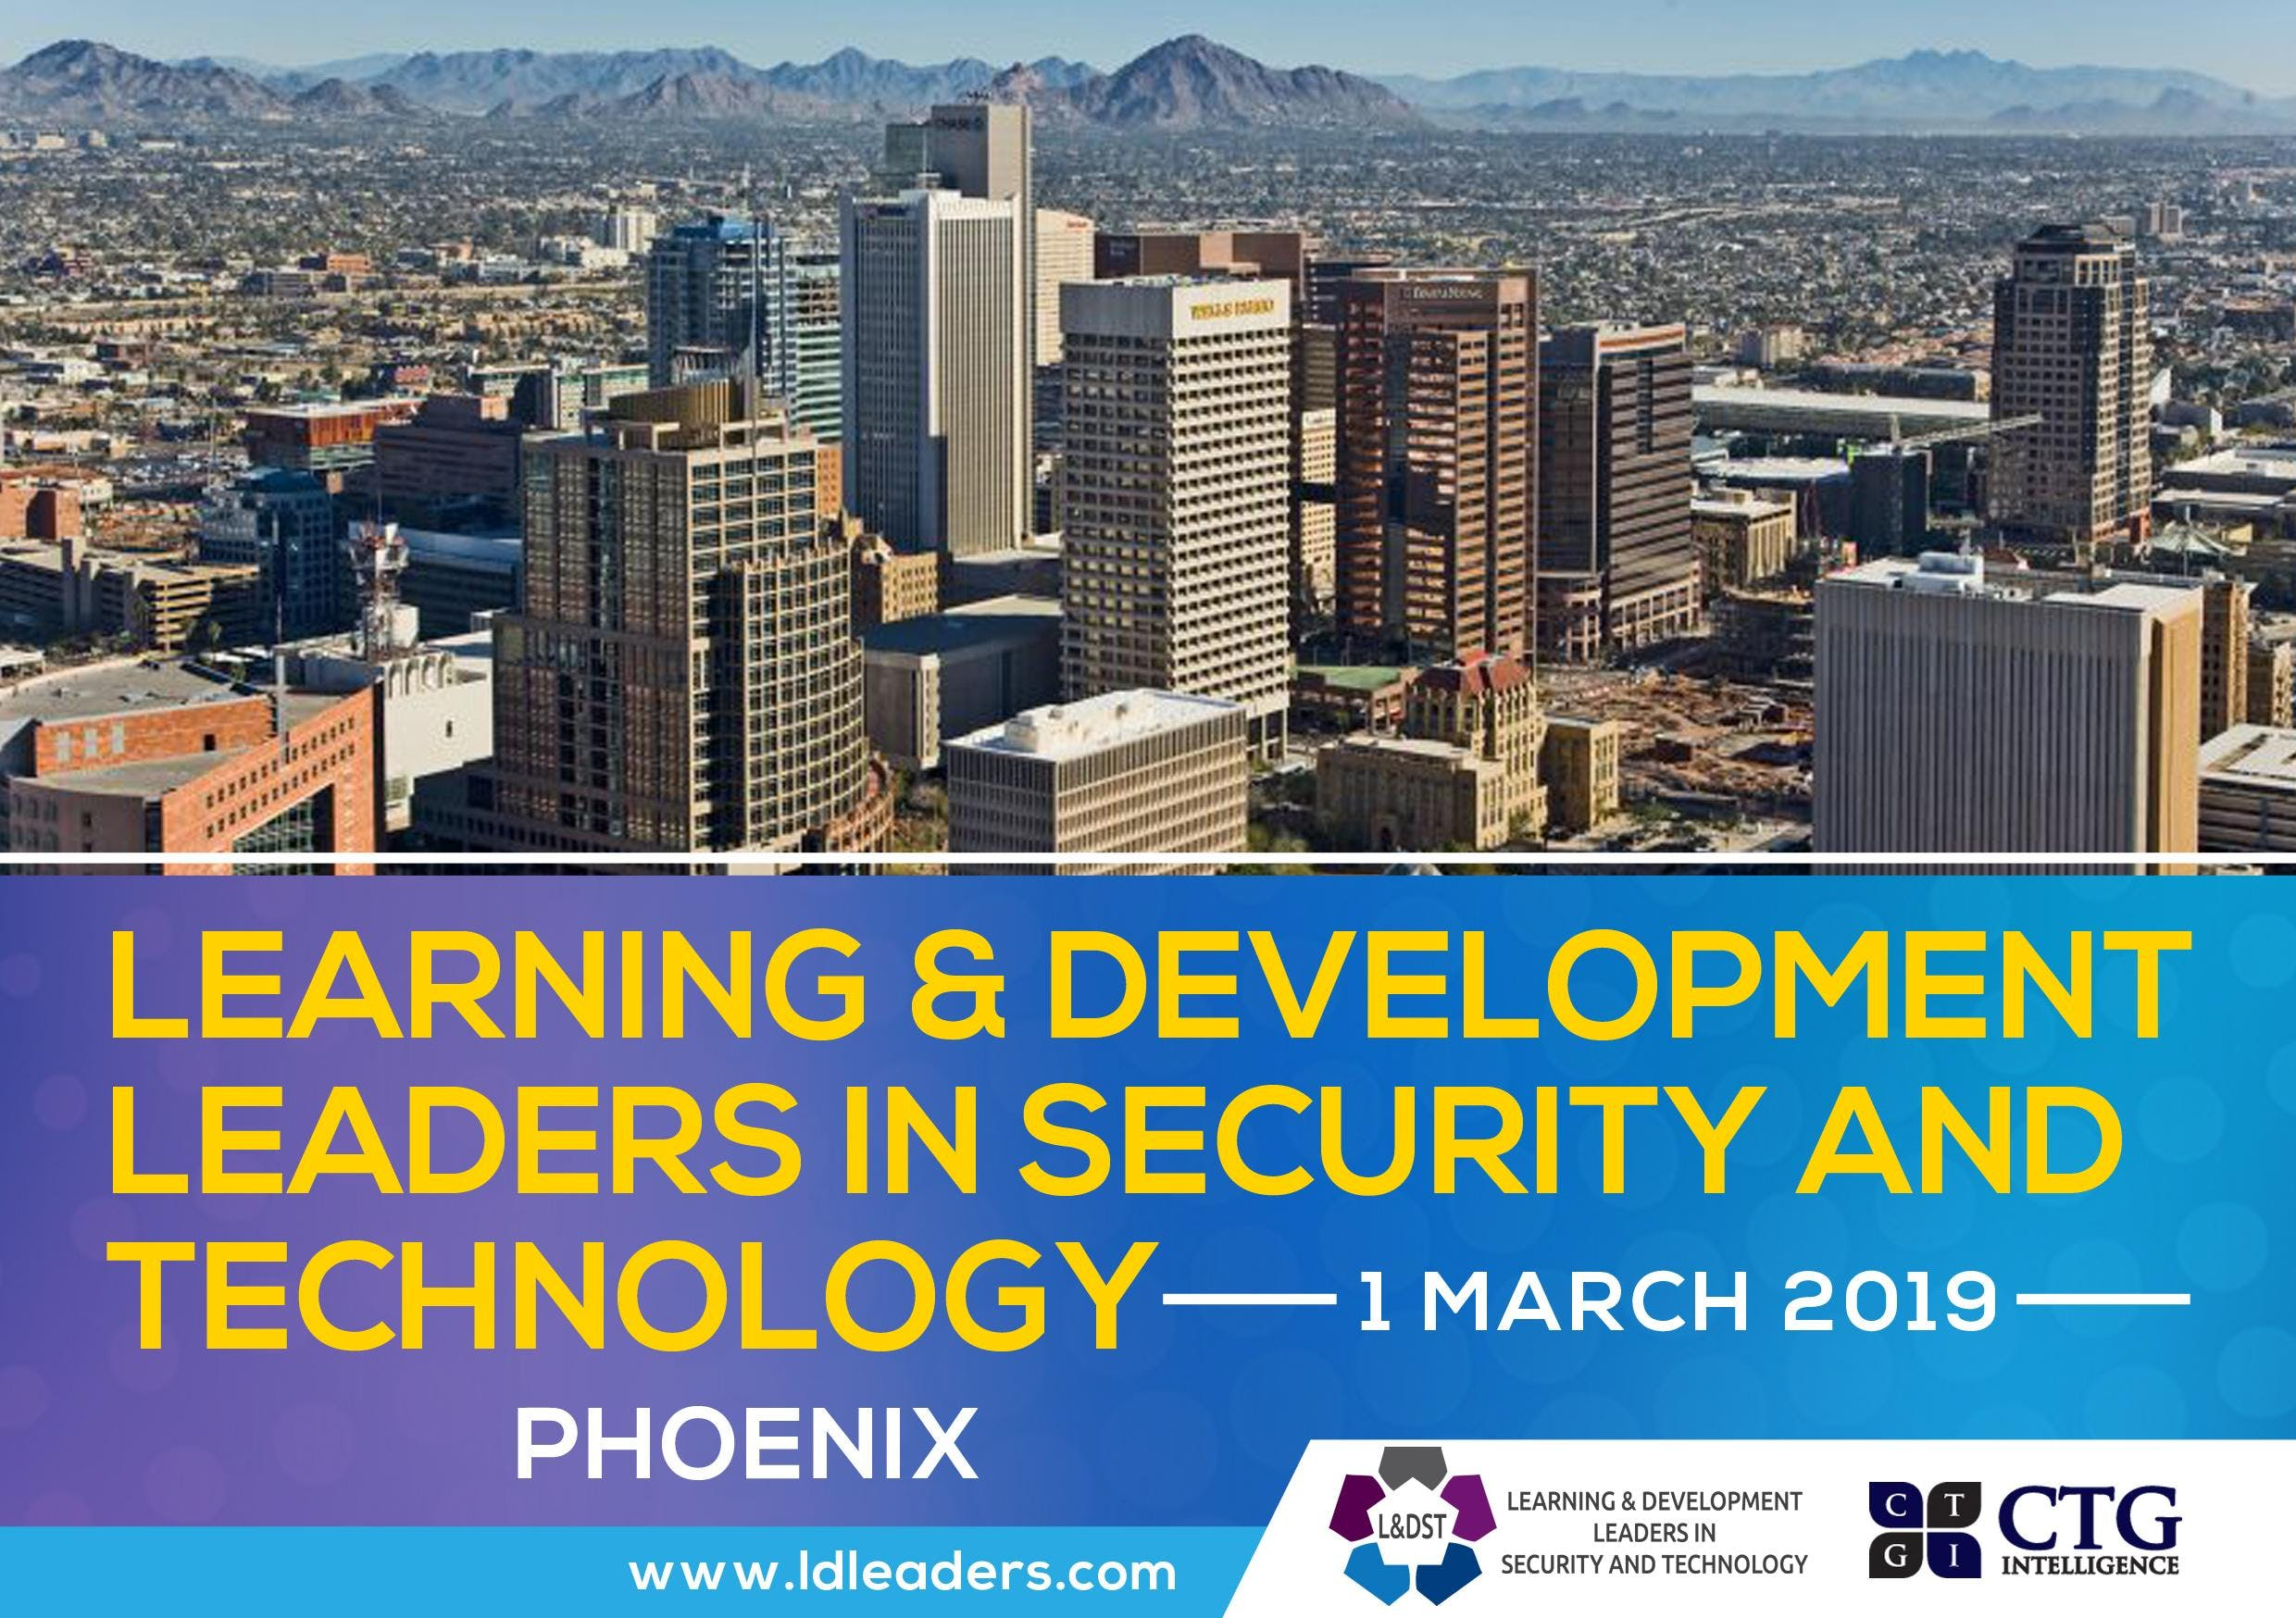 Learning & Development Leaders in Security and Technology Phoenix